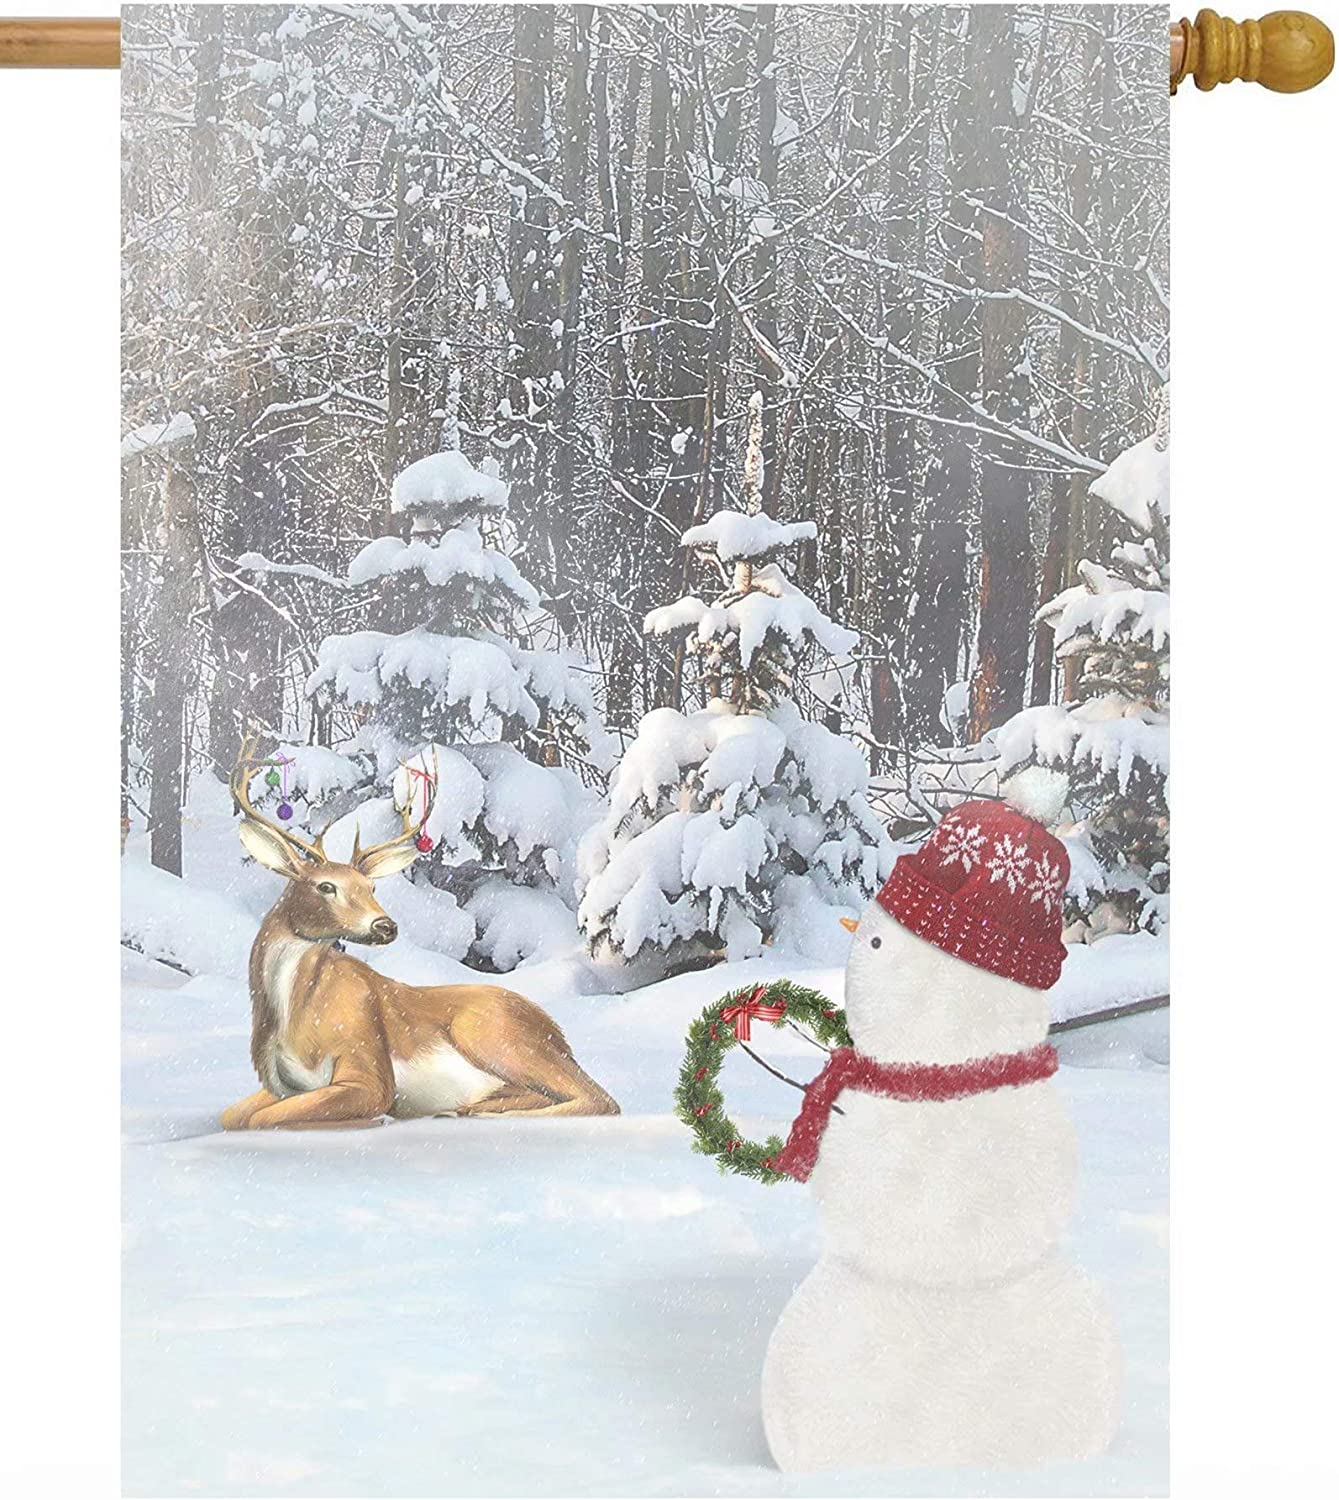 "ShineSnow Christmas Winter Snowman and Deer with Ornaments in Snow Forest House Flag 28"" x 40"" Double Sided Polyester Welcome Large Yard Garden Flag Banners for Patio Lawn Home Outdoor Decor"